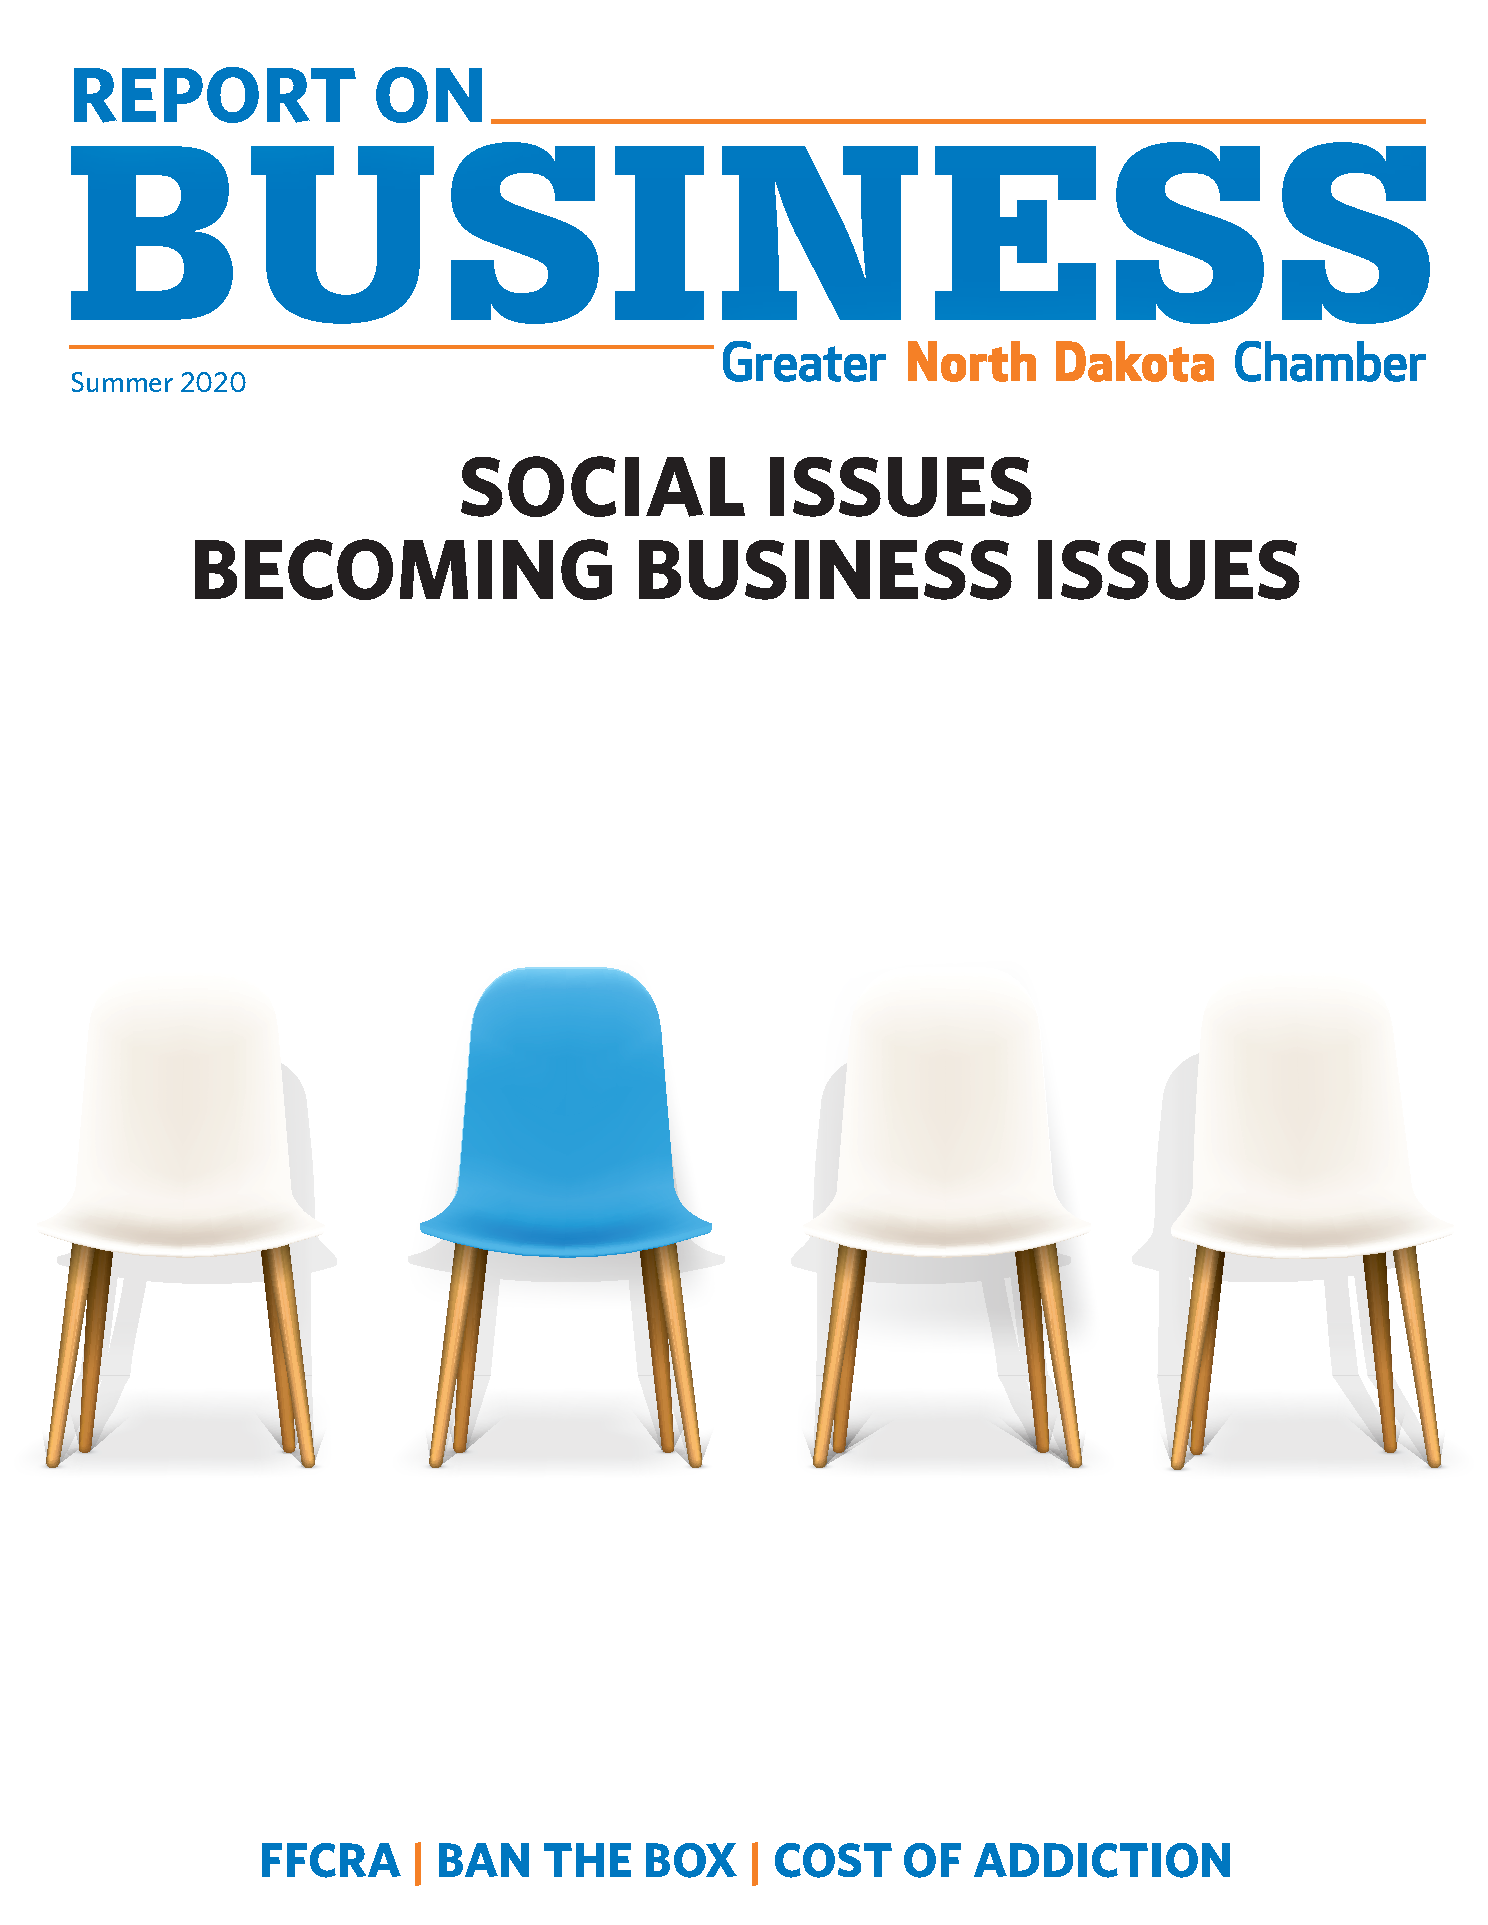 Summer 2020 Report on Business Launch